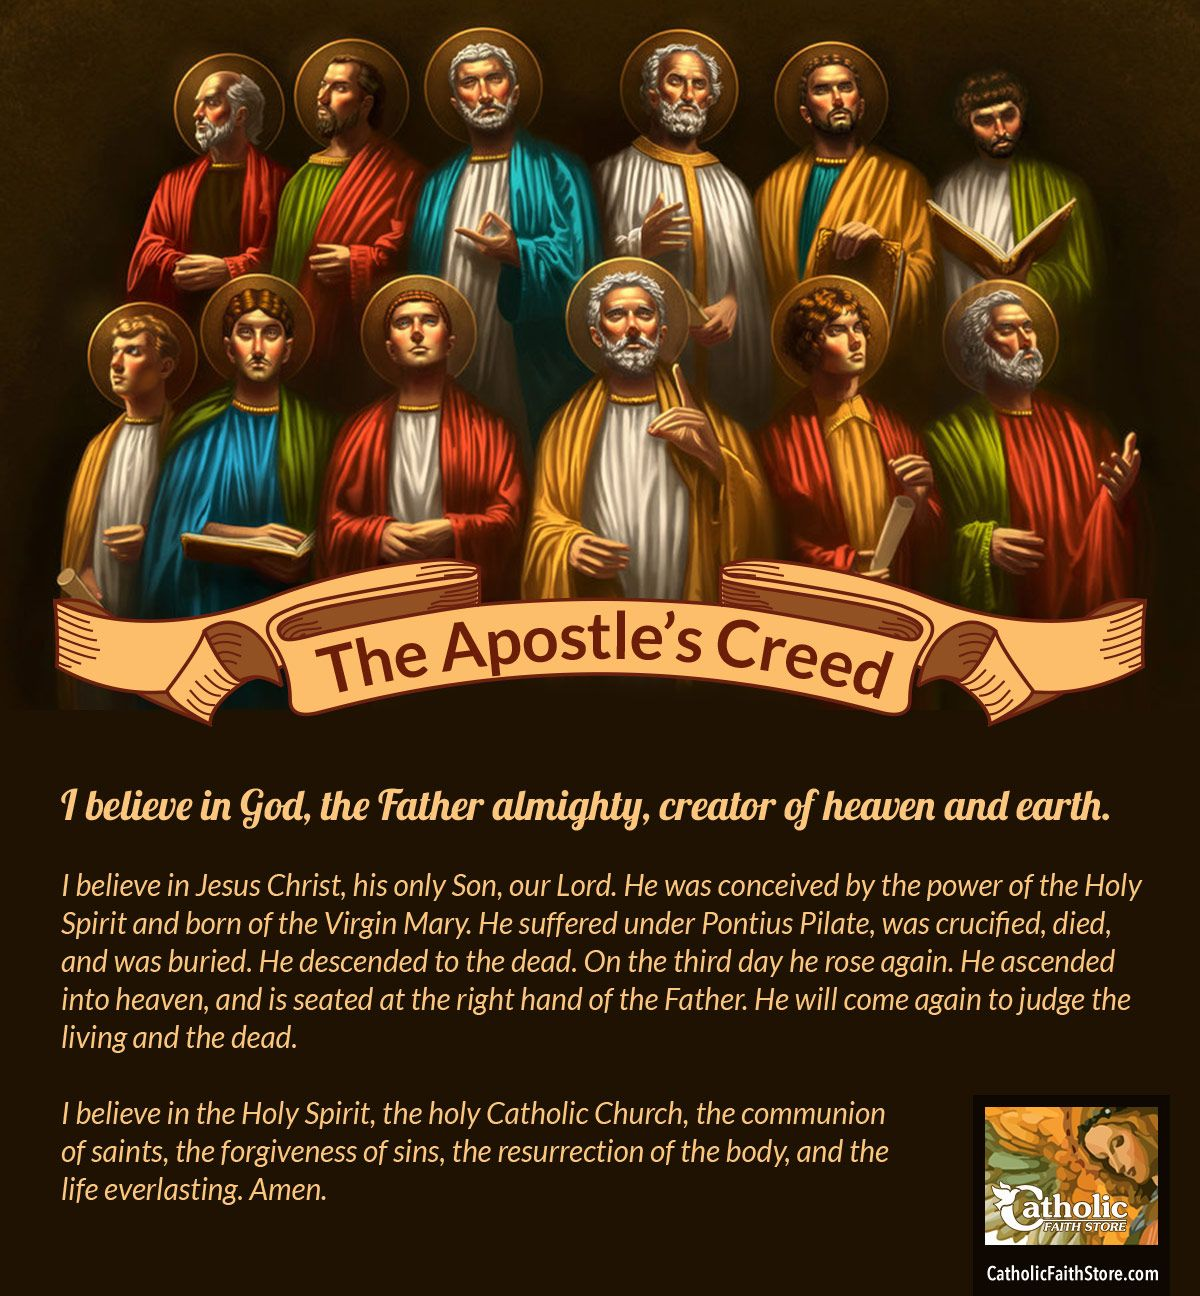 The Word Creed Comes From The Latin Word Credo Meaning To Believe